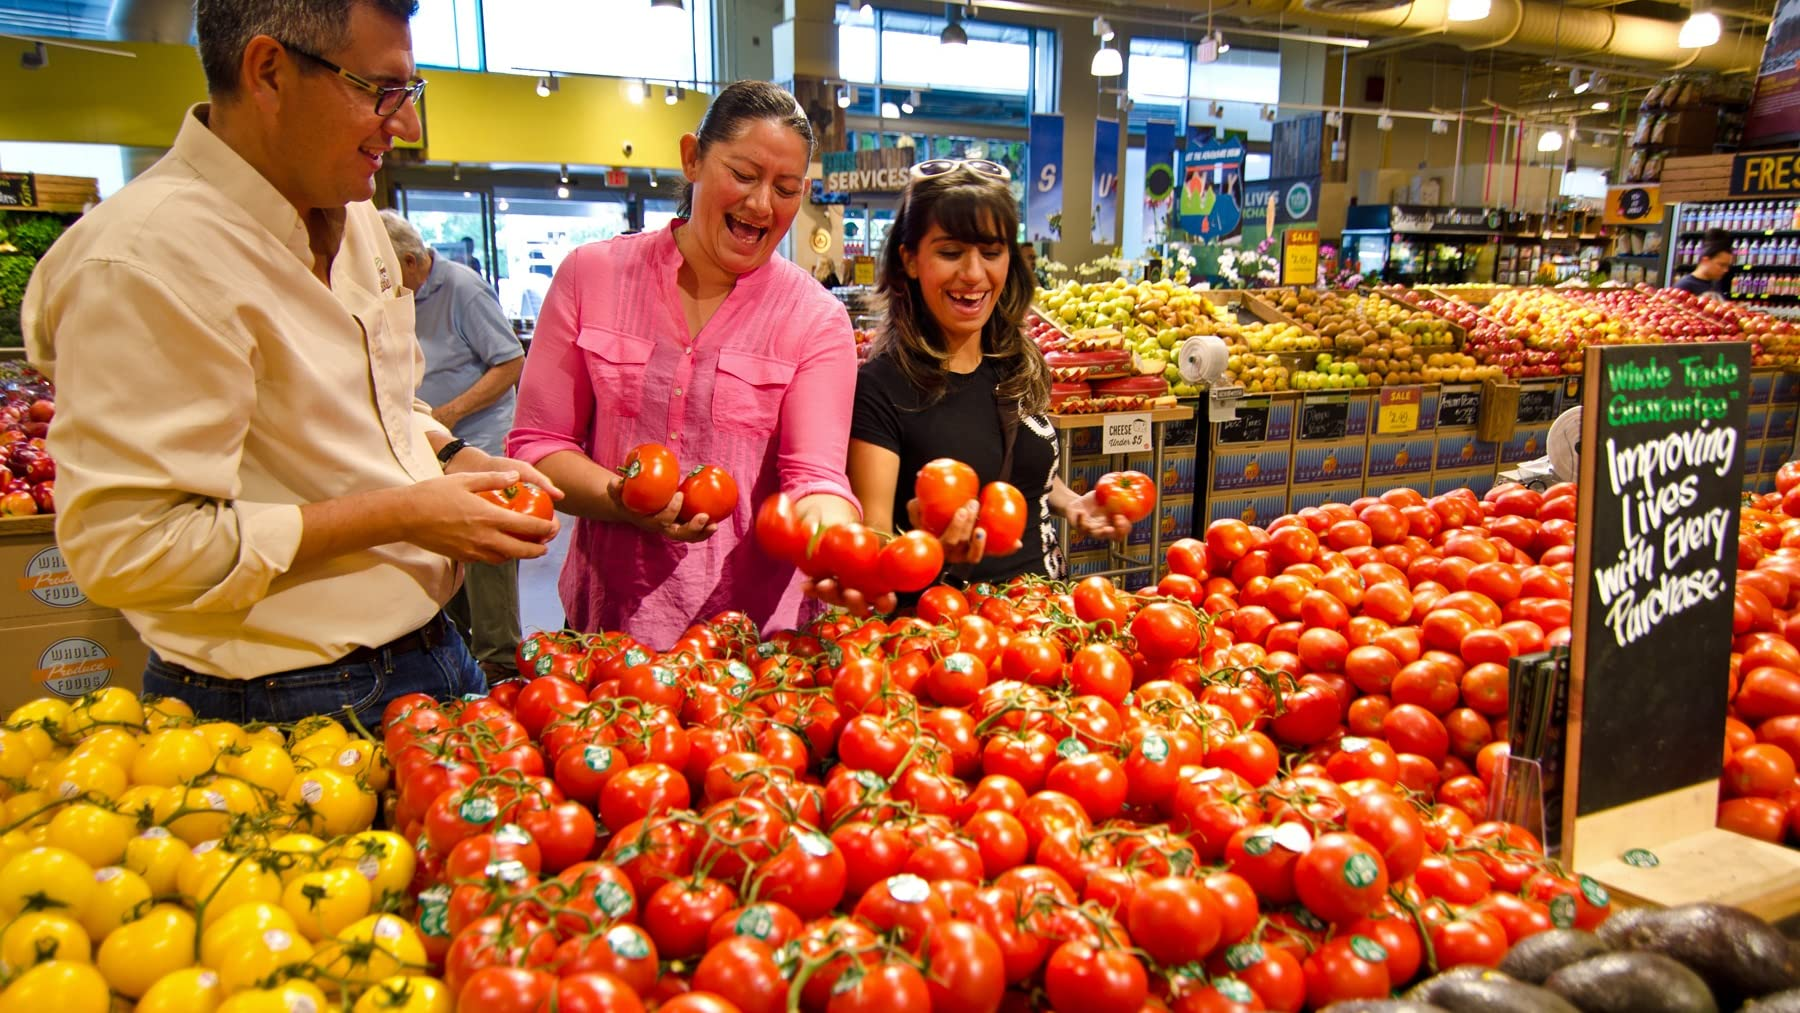 Olga (center) and Rosa Maria (right) examine Whole Trade® produce in a store.